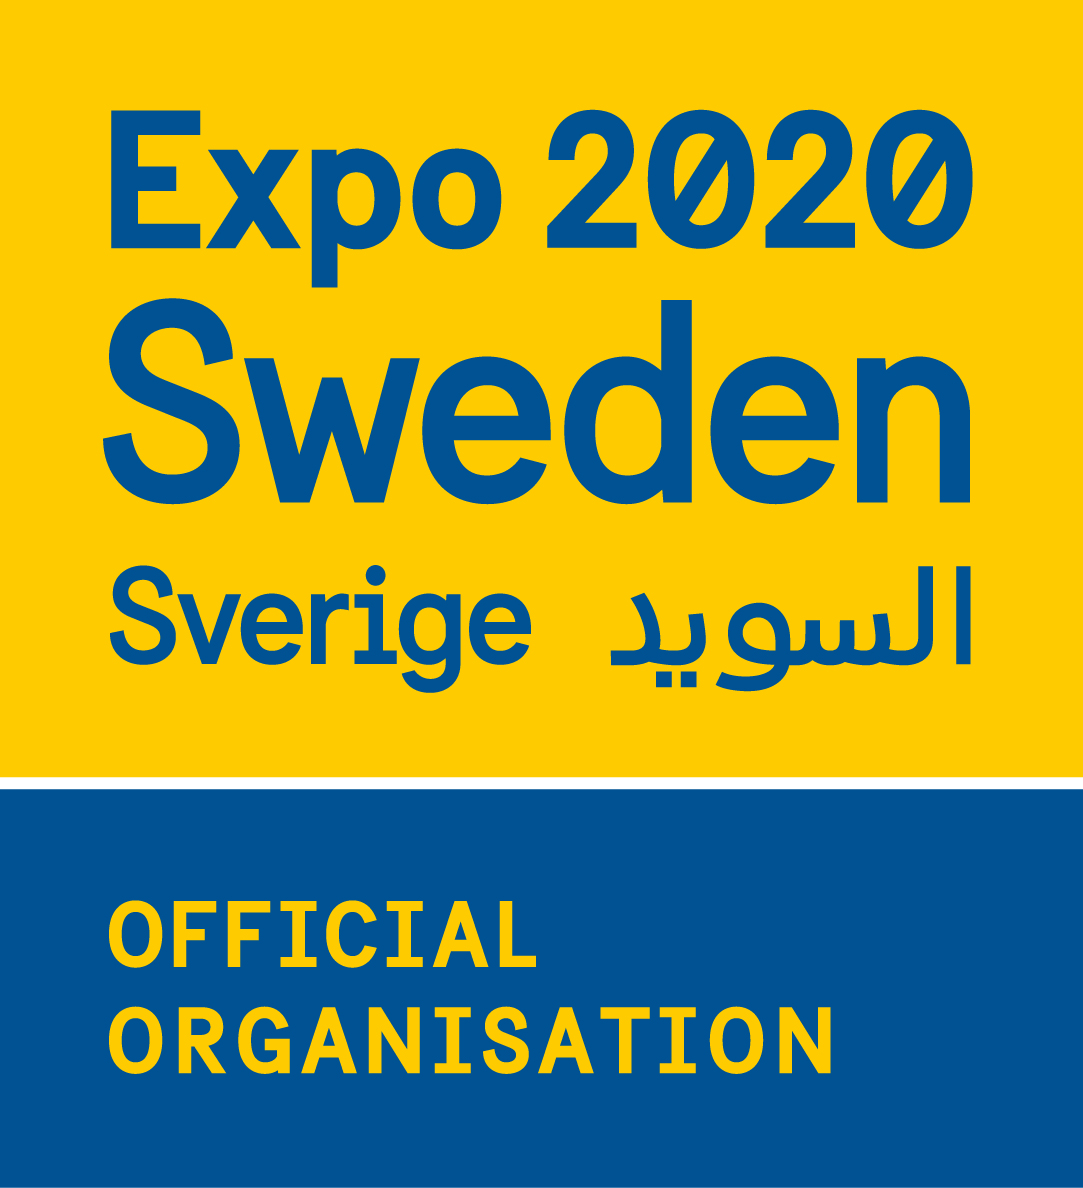 Expo 2020 Official Organisation